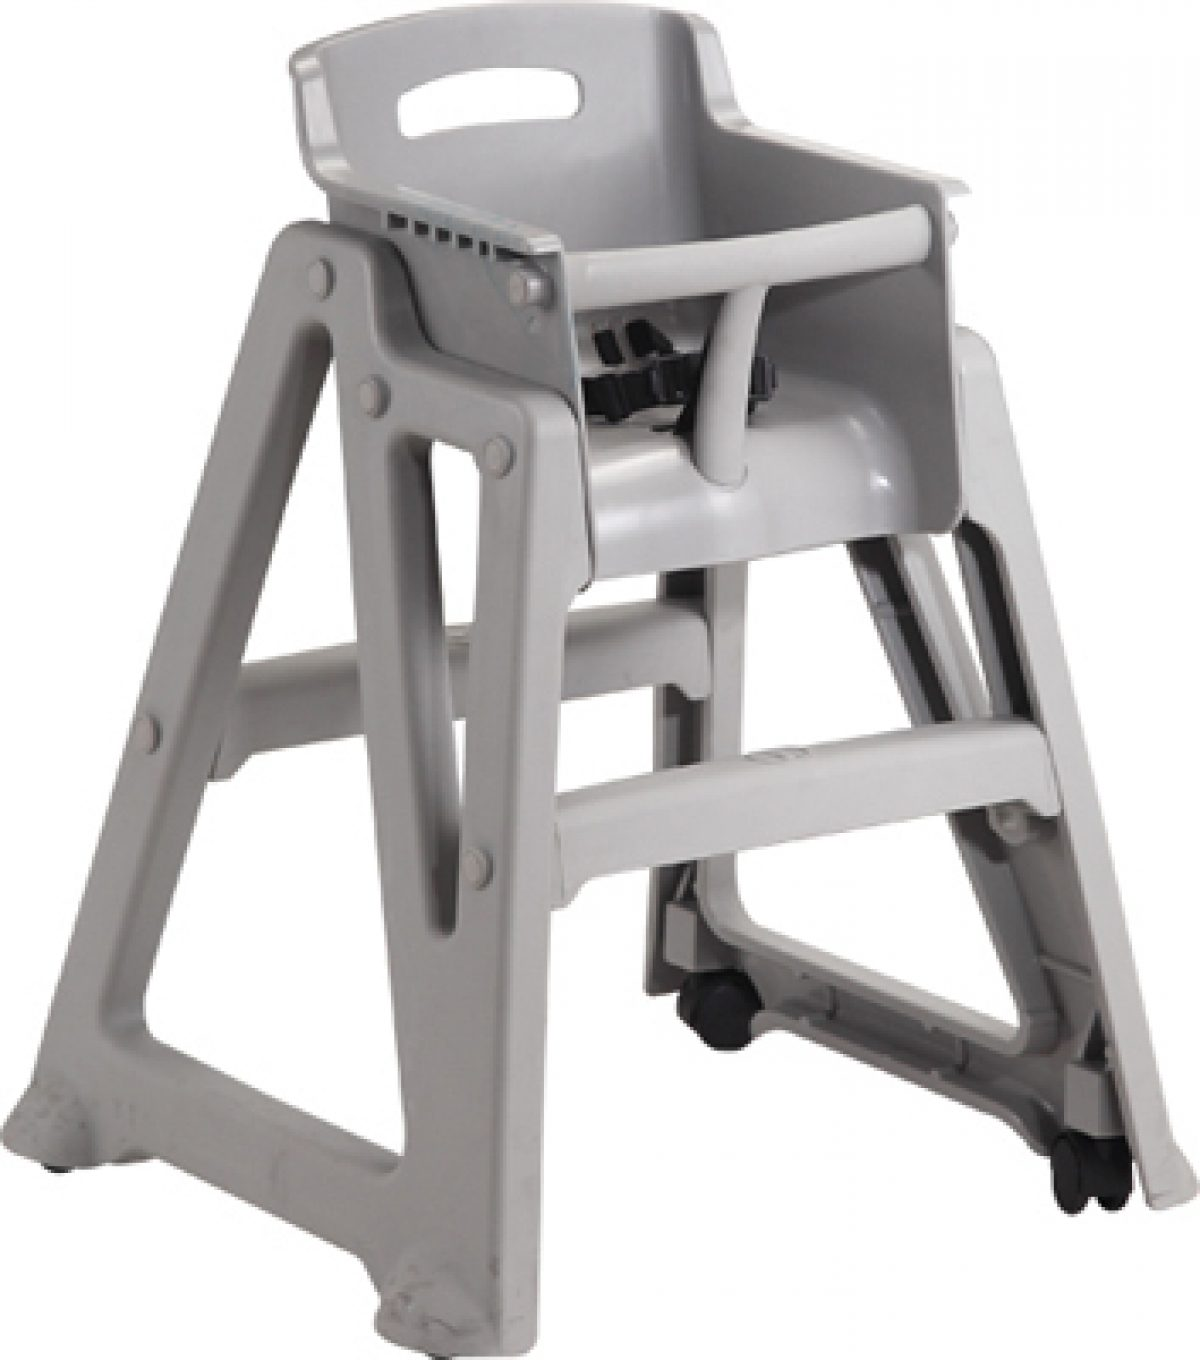 Trust Commercial Baby High Chair mtime20190617090748